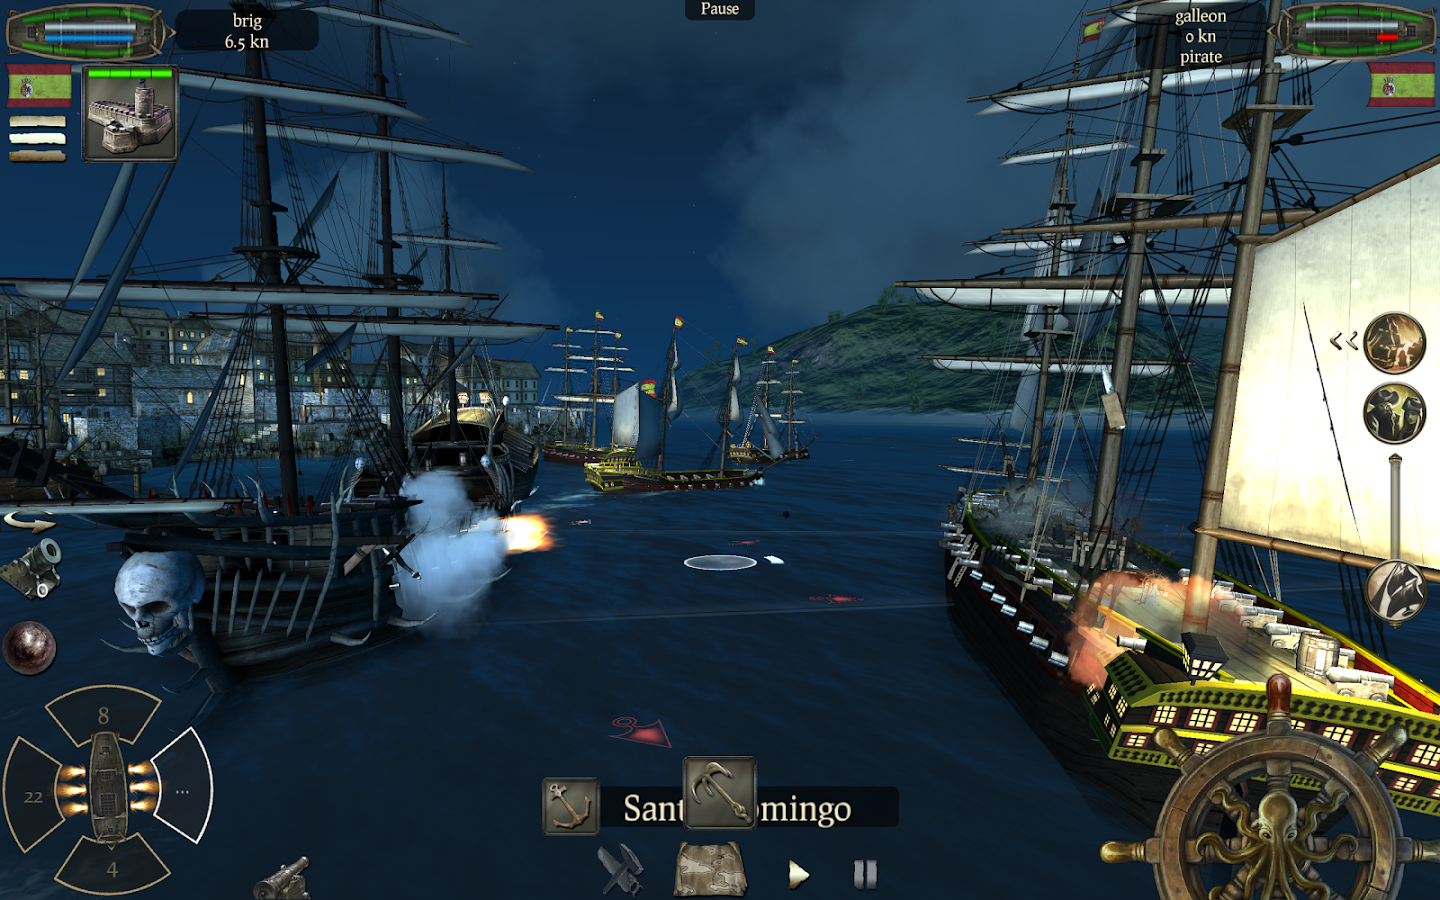 The Pirate: Plague of the Dead Screenshot 15